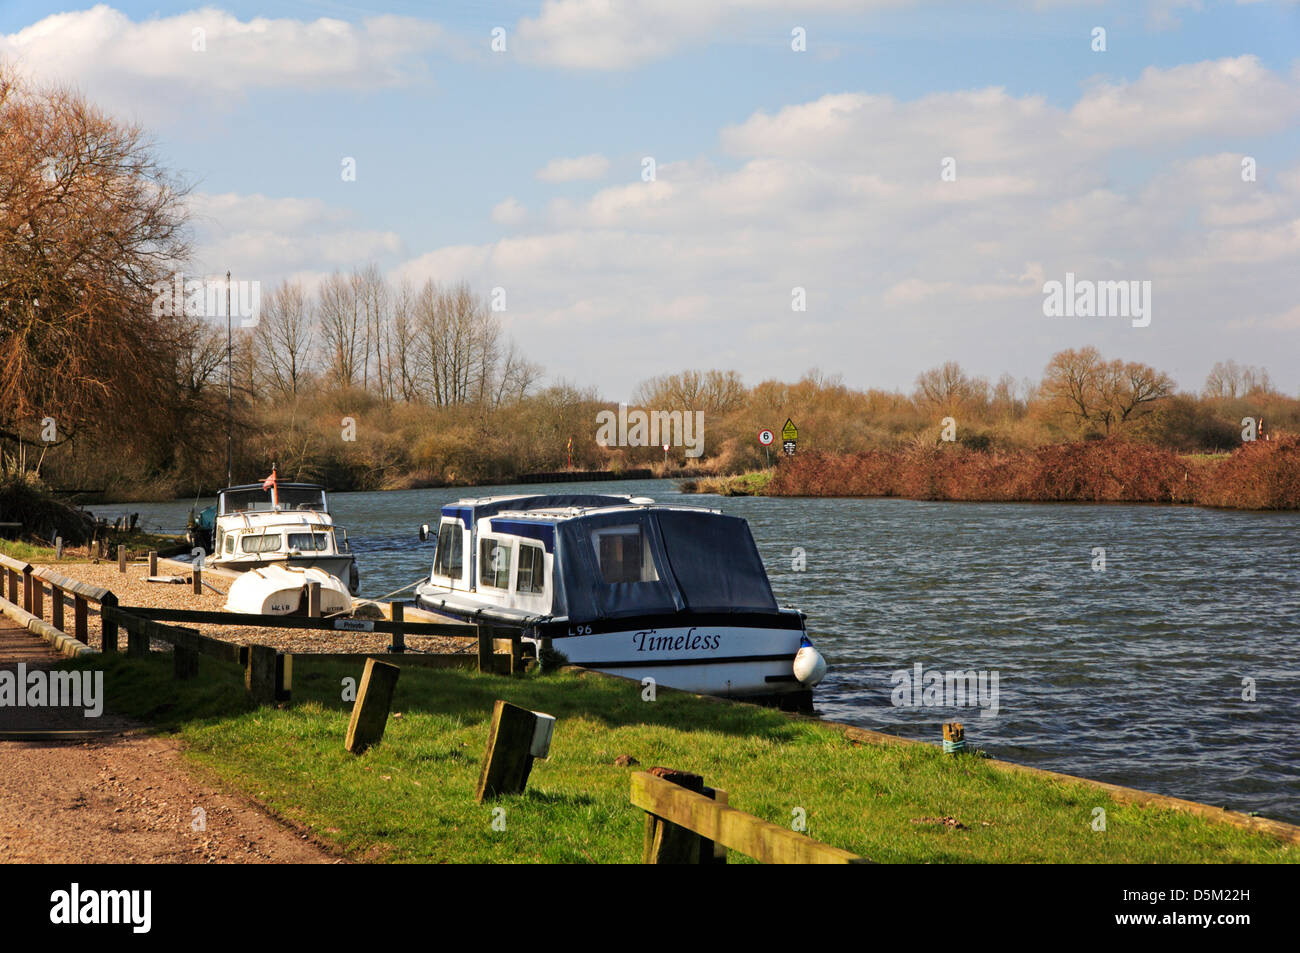 A view of two cruisers moored on the River Yare at Bramerton, Norfolk, England, United Kingdom. - Stock Image